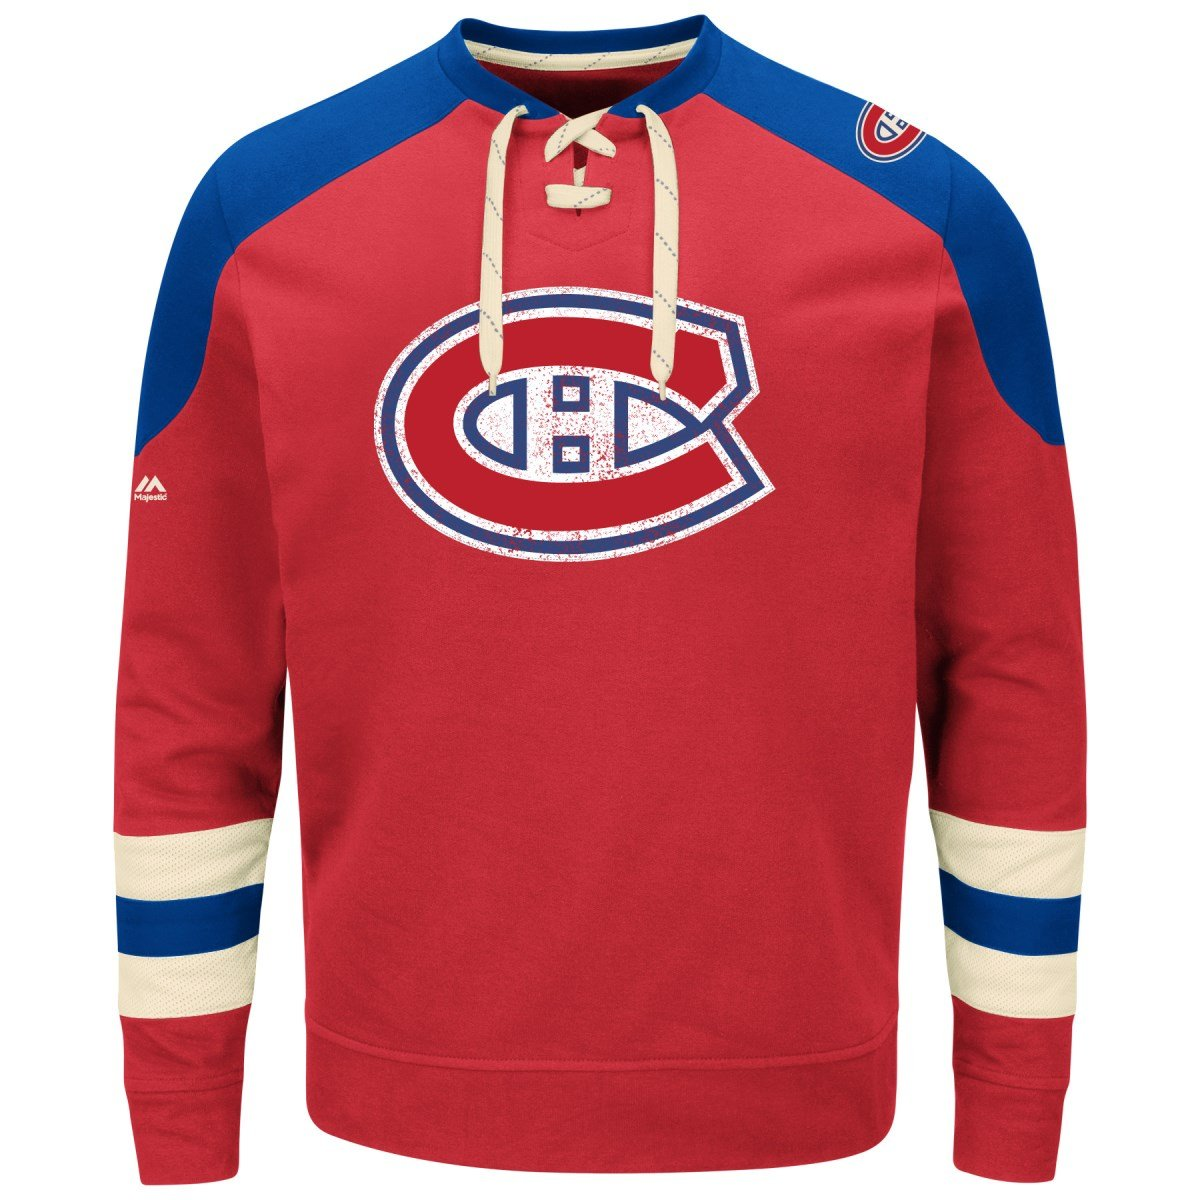 Montreal Canadiens Majestic NHL Vintage Centre Men's Pullover Crew Sweatshirt